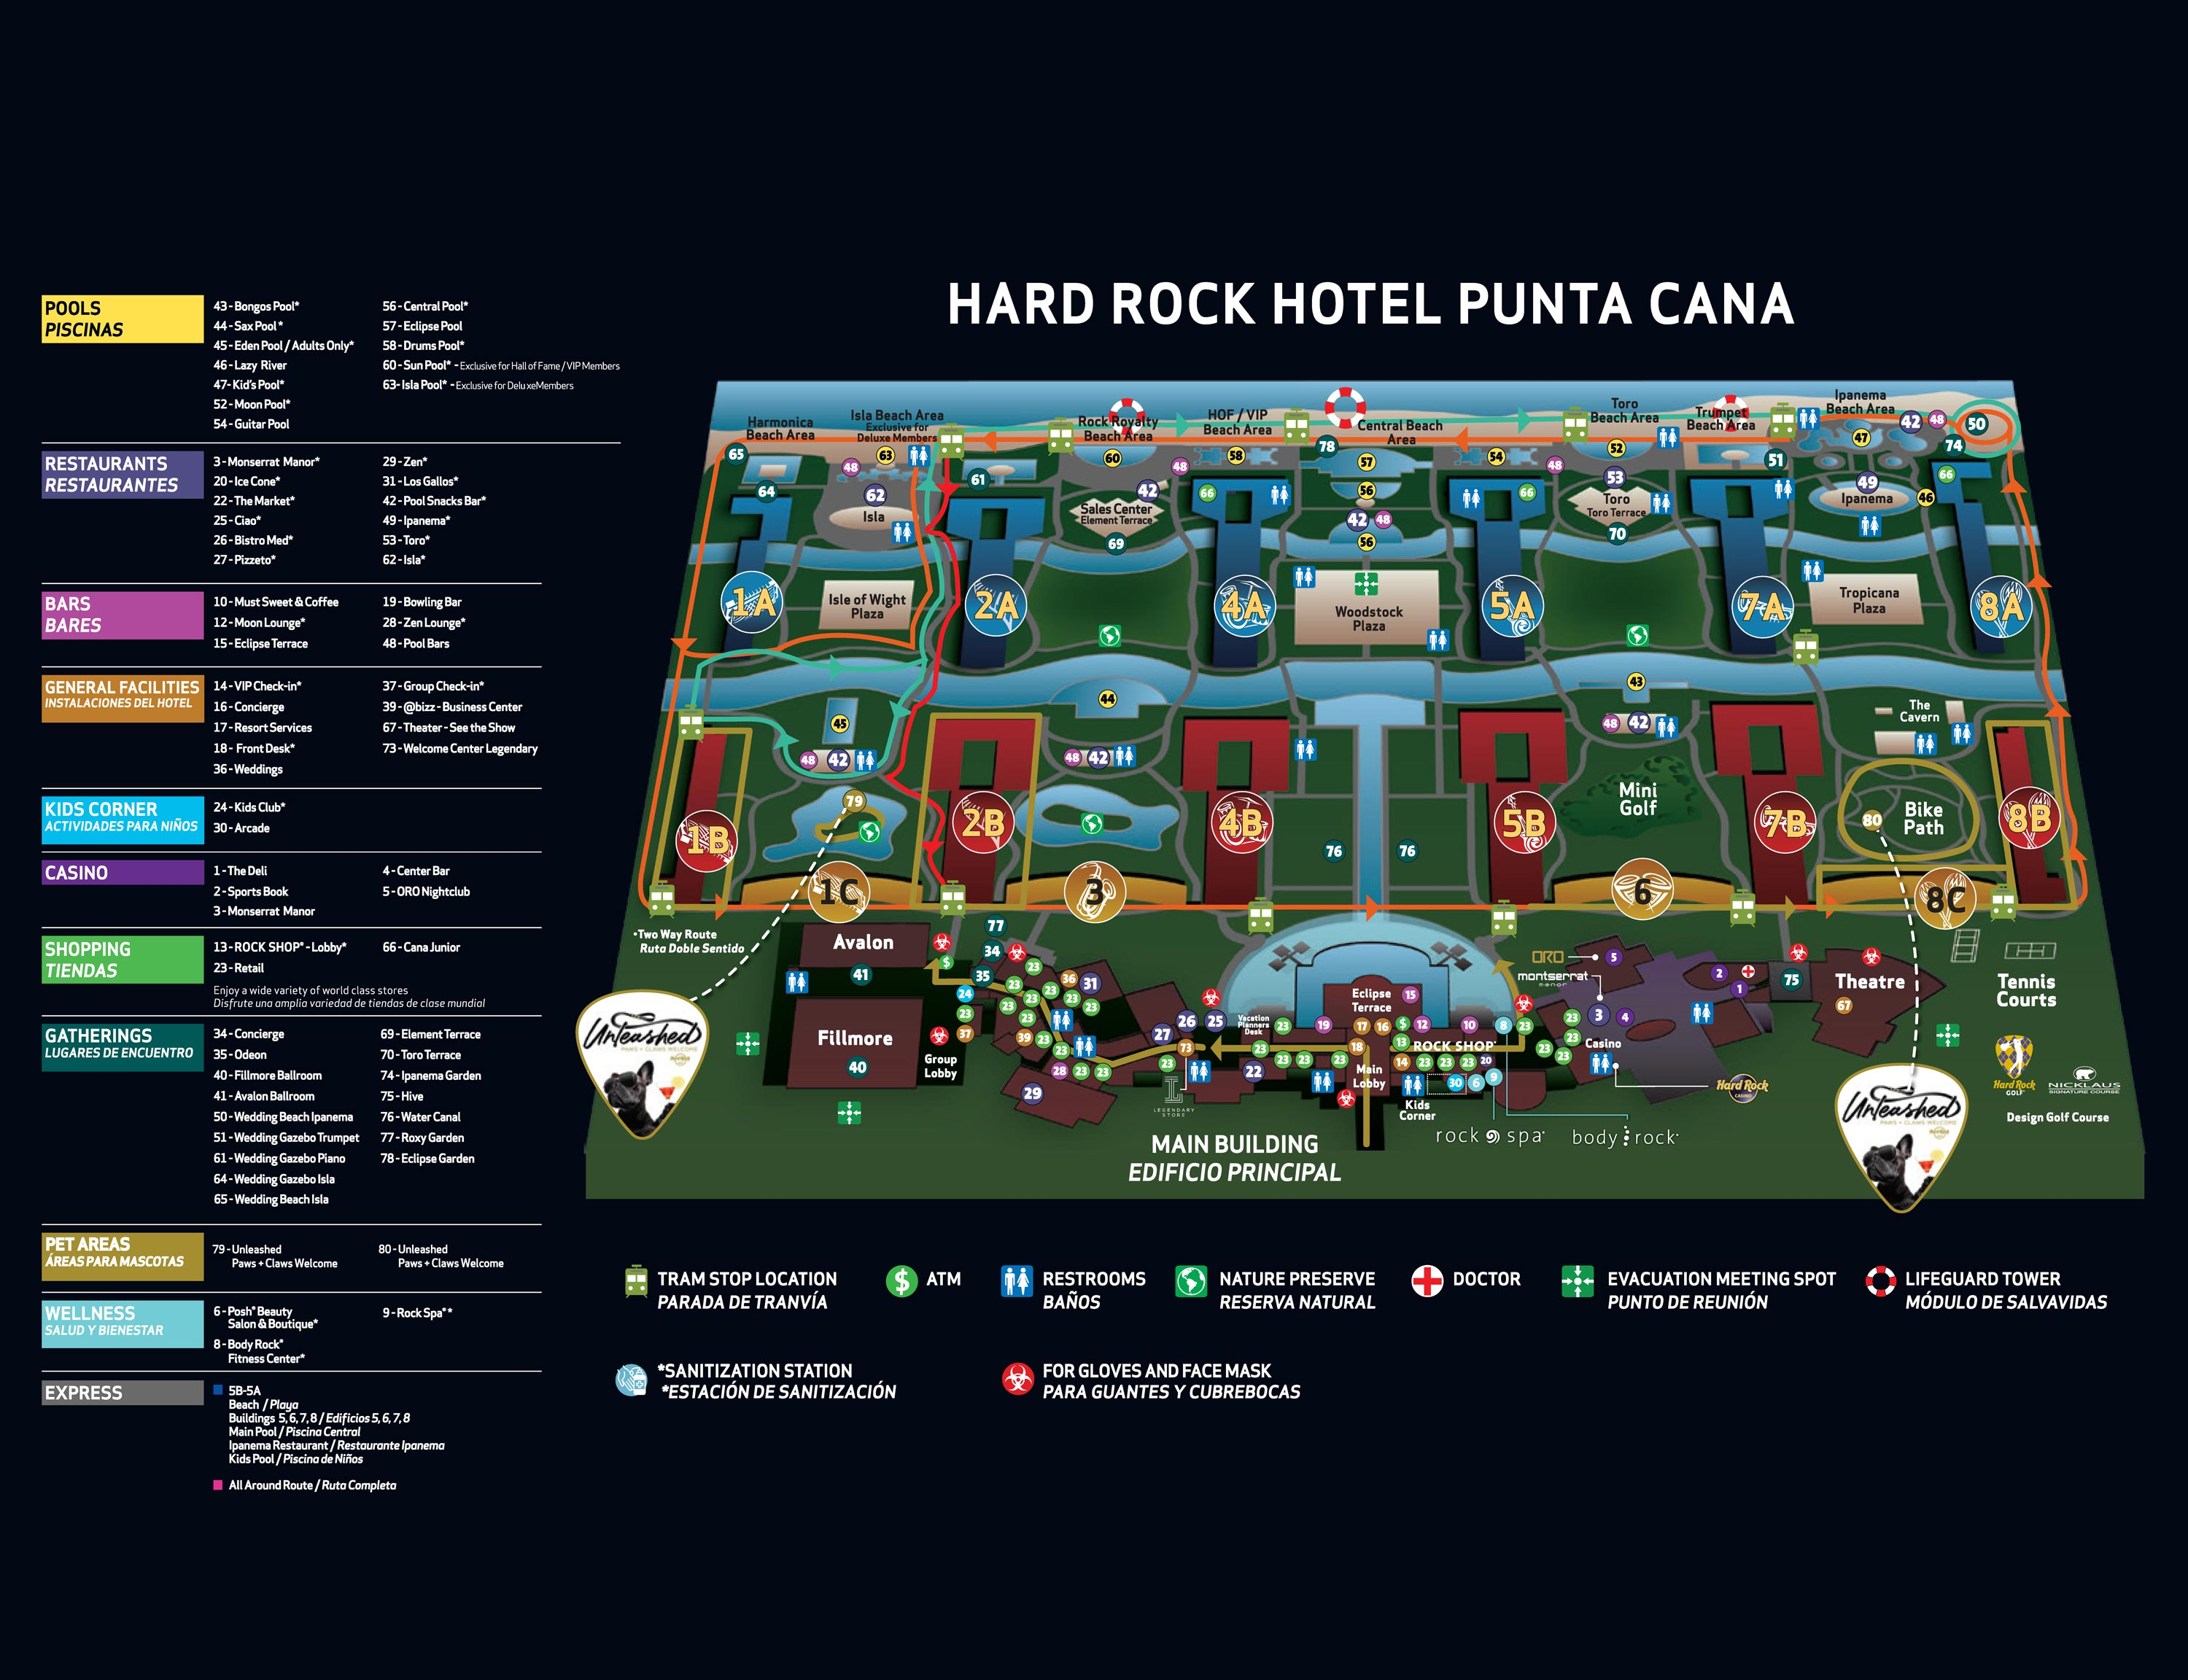 Hard rock hotel casino punta cana map how to win at american roulette